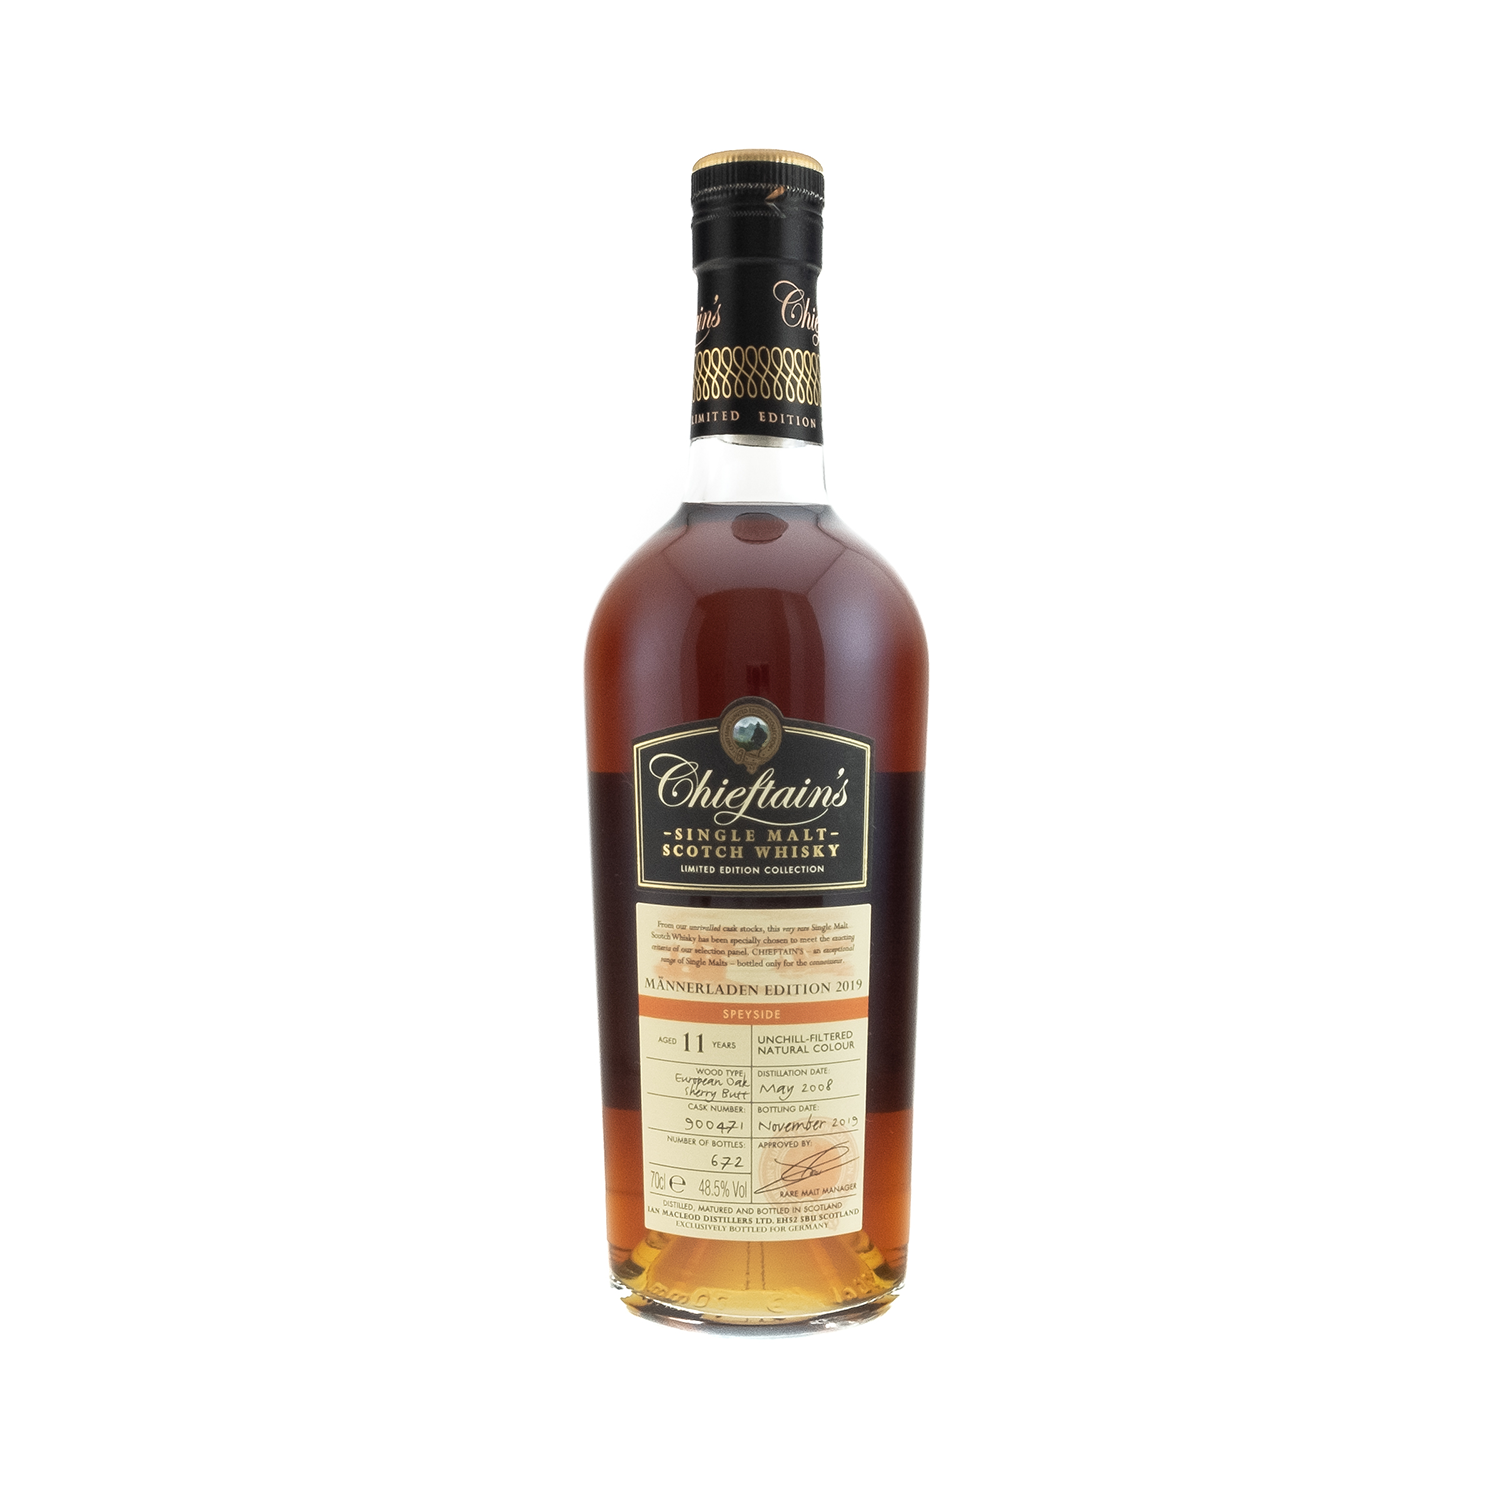 Whisky_Chieftains_Männerladen-Edition-2019_Speyside_002